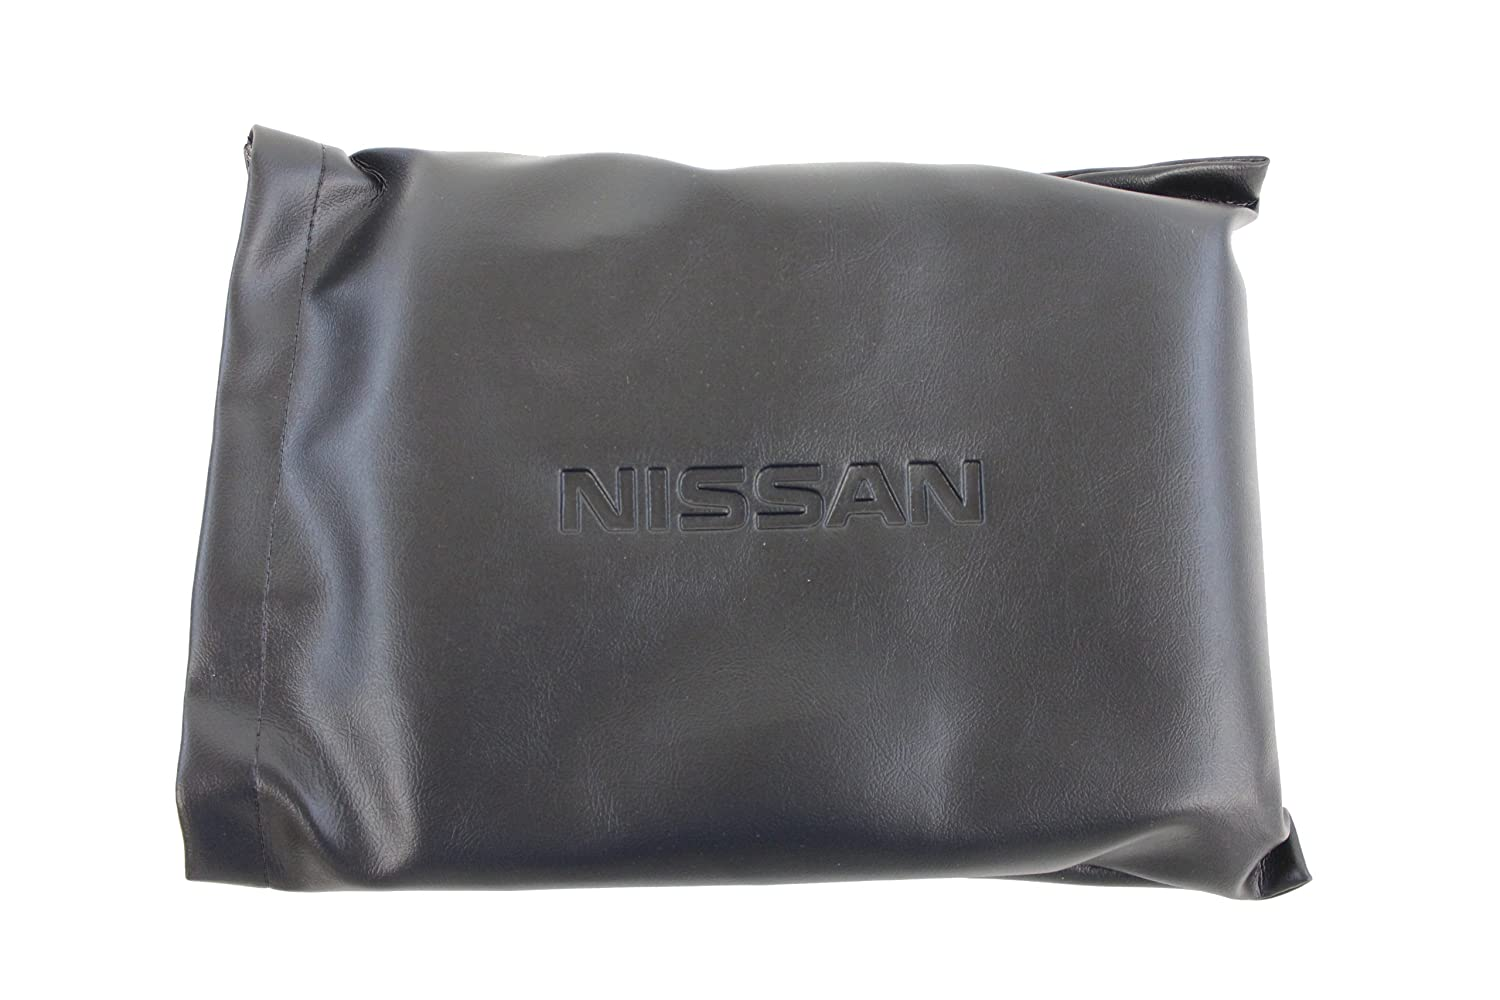 Nissan Genuine Accessories 999N3-XZ000 Black Rear Cargo Cover